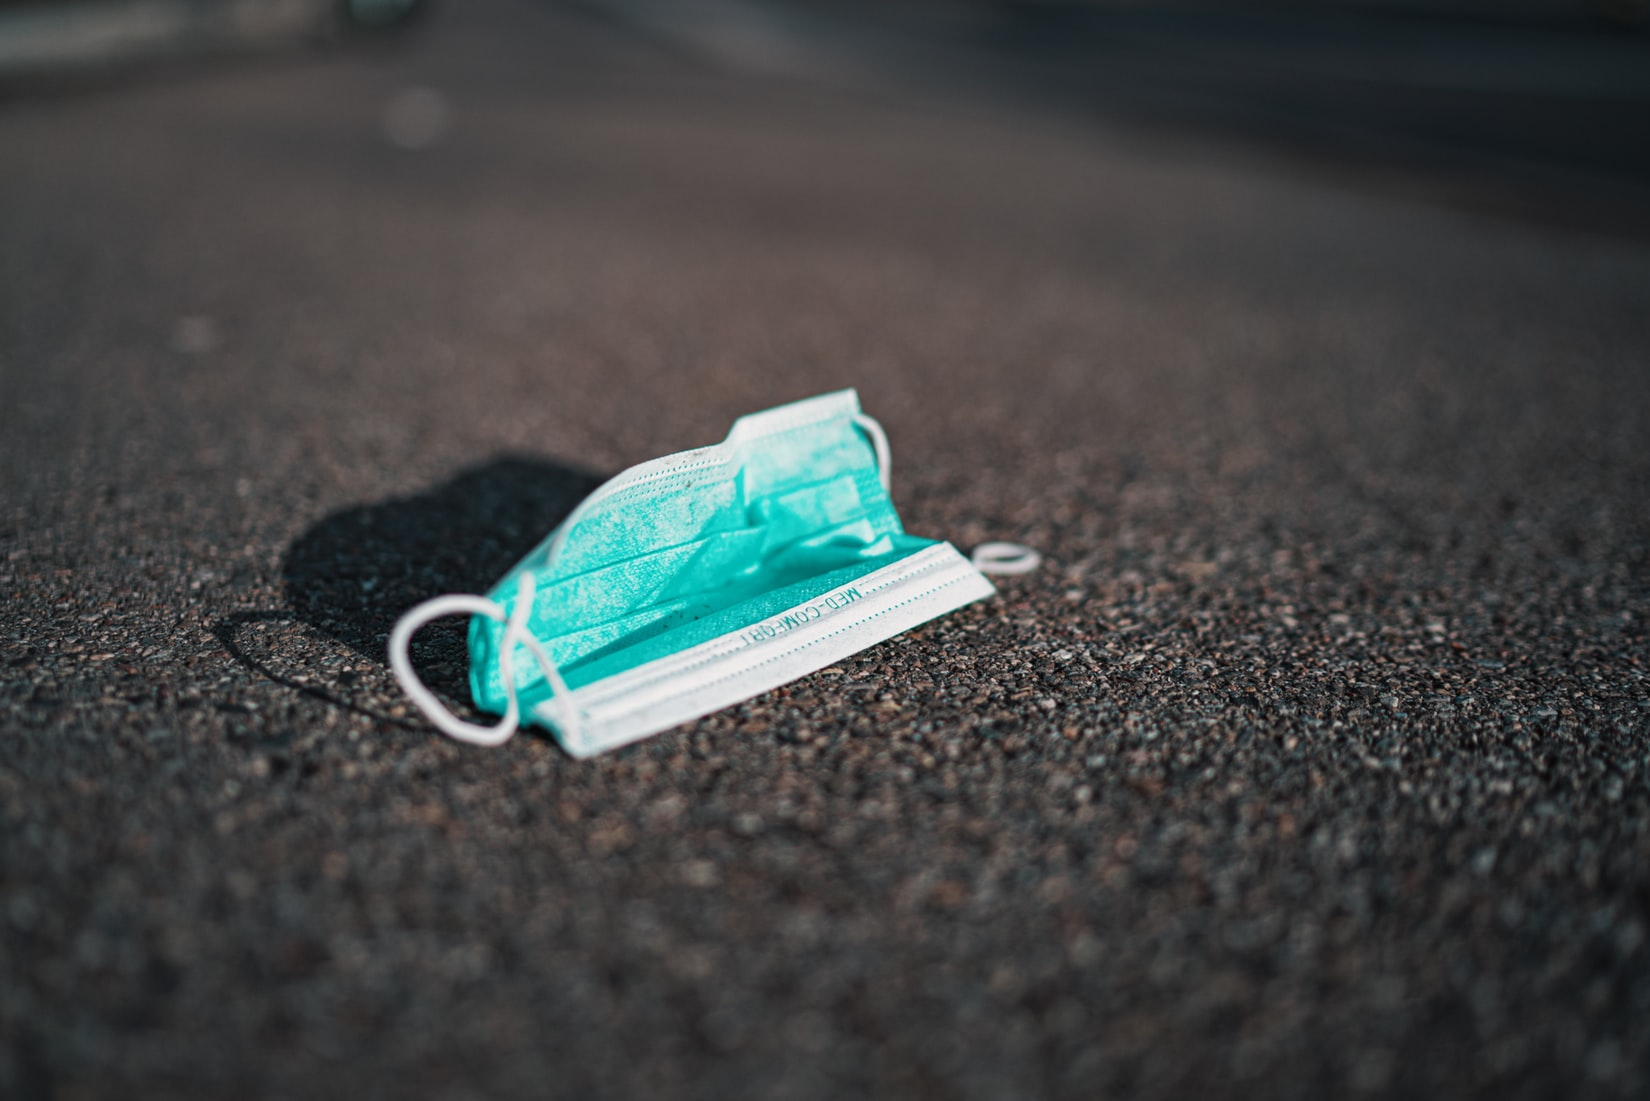 Turquoise medical face mask on ground